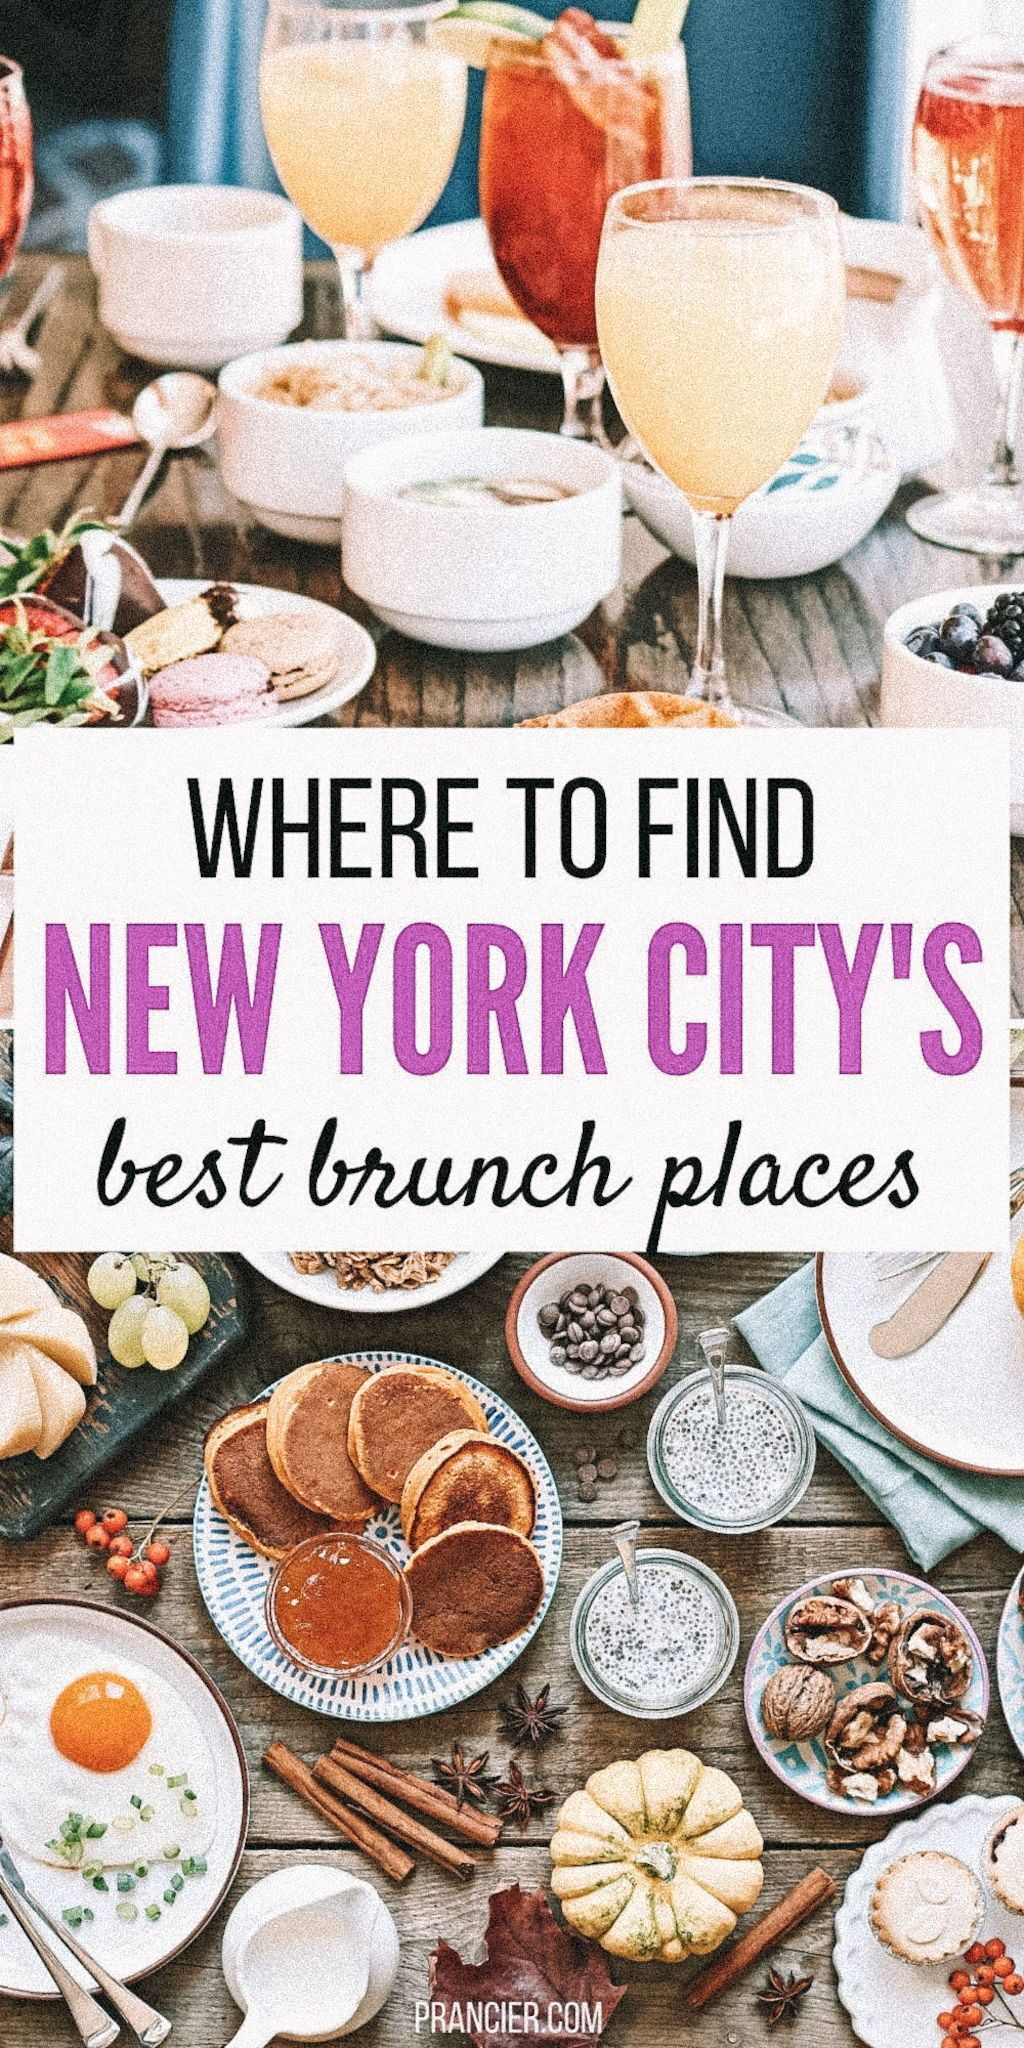 Best Brunch Nyc The 7 Best Brunch Spots In Nyc Prancier In 2020 Brunch Nyc Brunch Restaurants Brunch Spots